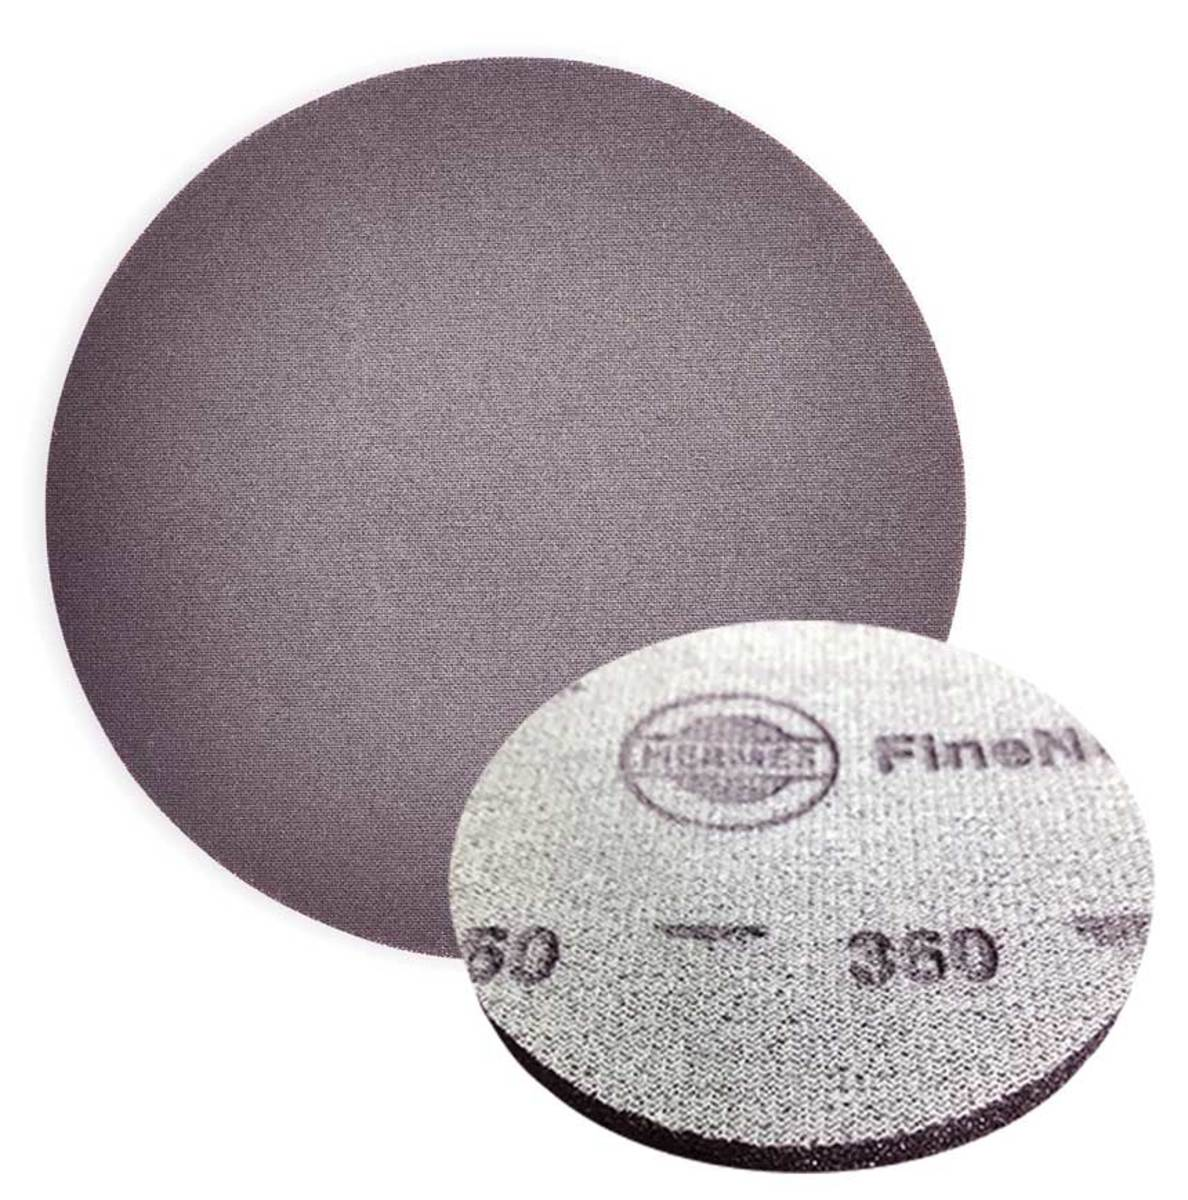 FineNet from Herme Abrasives. Appliactions include fine sanding of clear coat layers before polishing.